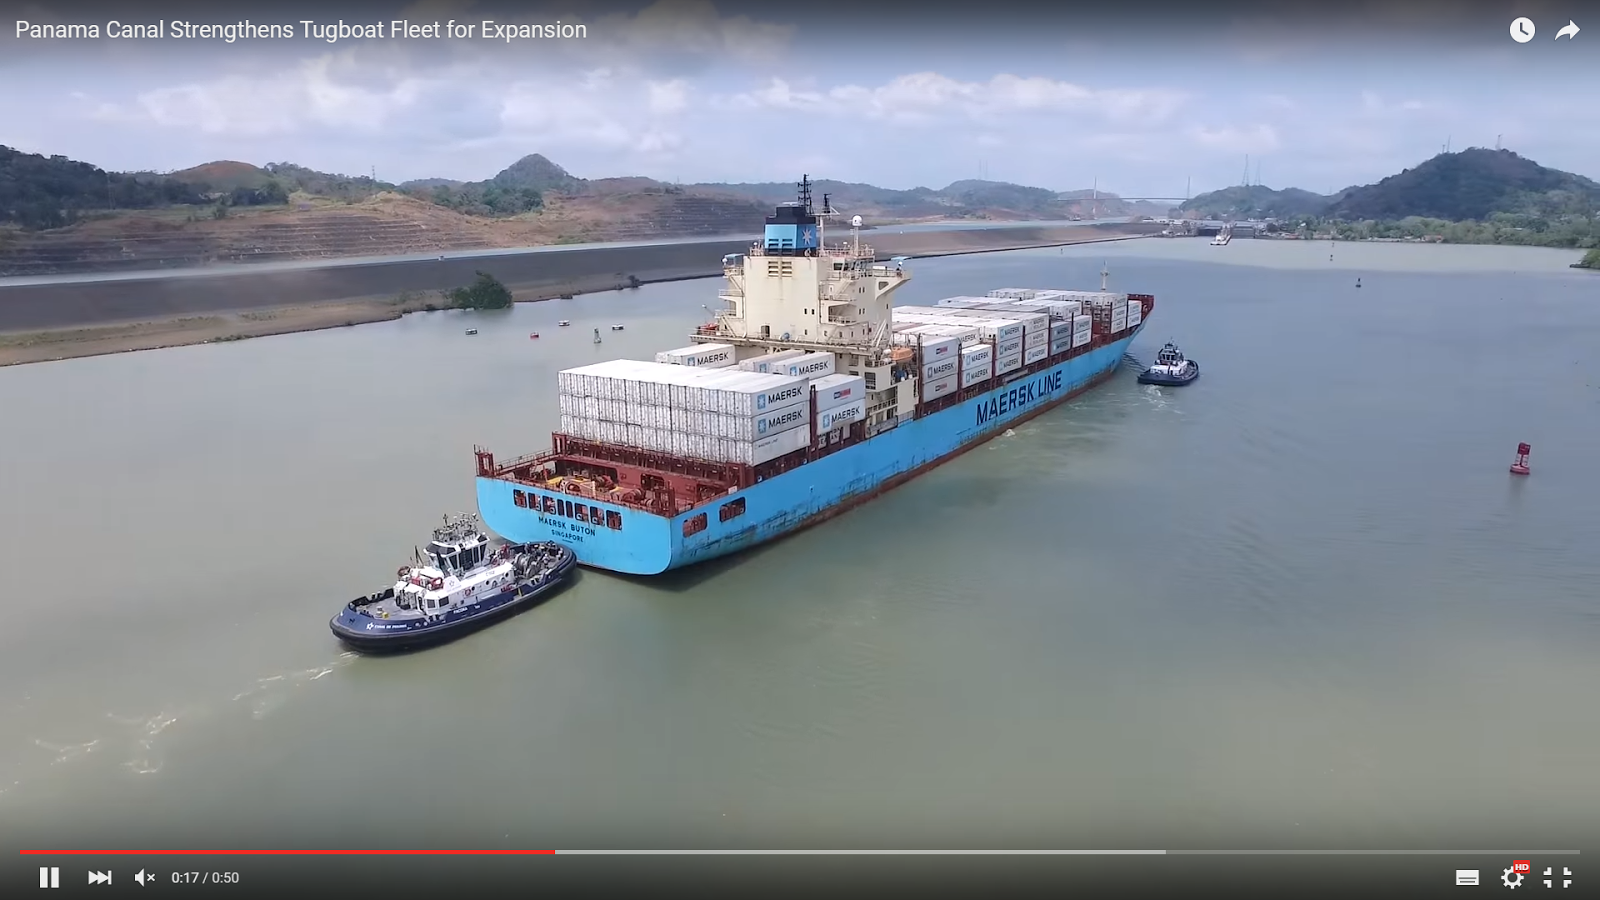 VIDEO: Panama Canal Strengthens Tugboat Fleet for Expansion